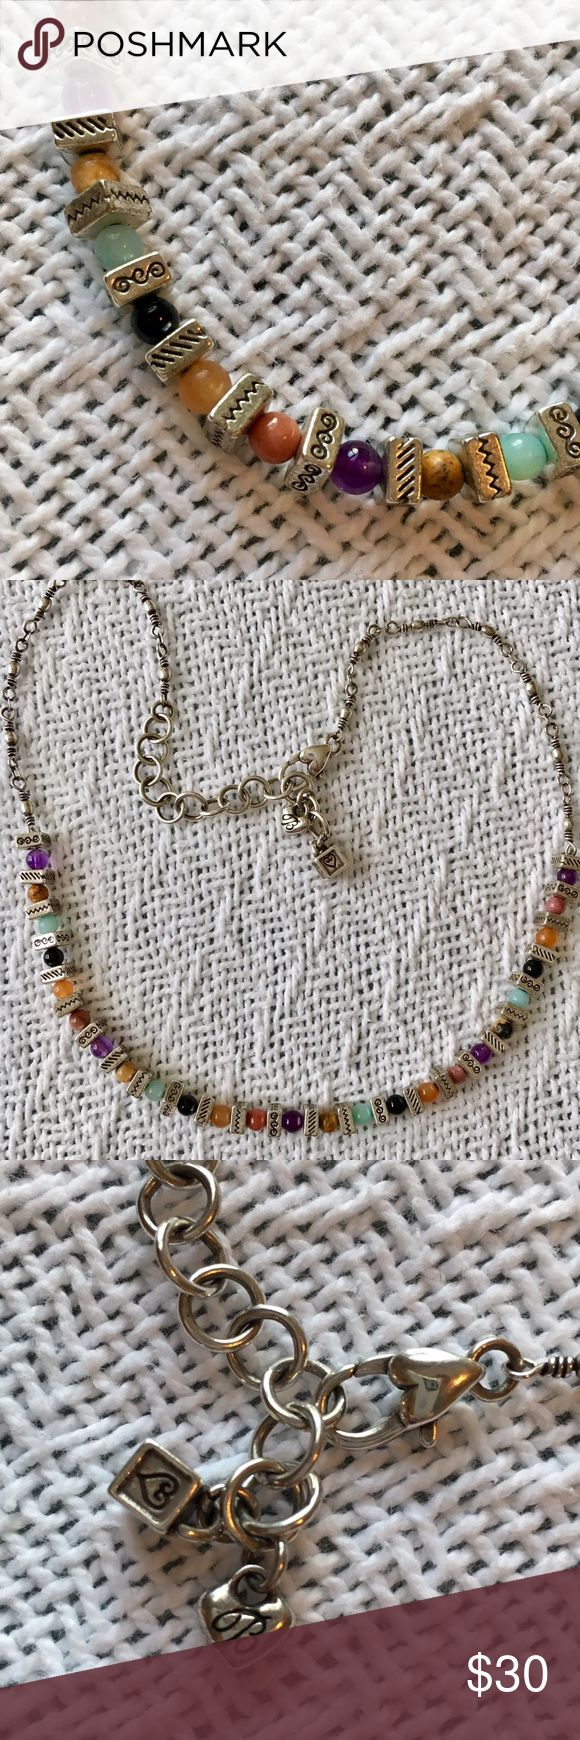 Brighton Confetti 🎉Necklace (Retired) 👀!!👍🏻 This retired necklace is a kaleidoscope of color! Gem stones include jasper, black onyx, amethyst, orange quartzite, light green quartzite and rhodonite (per QVC website). Lobster claw clasp. Brighton Jewelry Necklaces